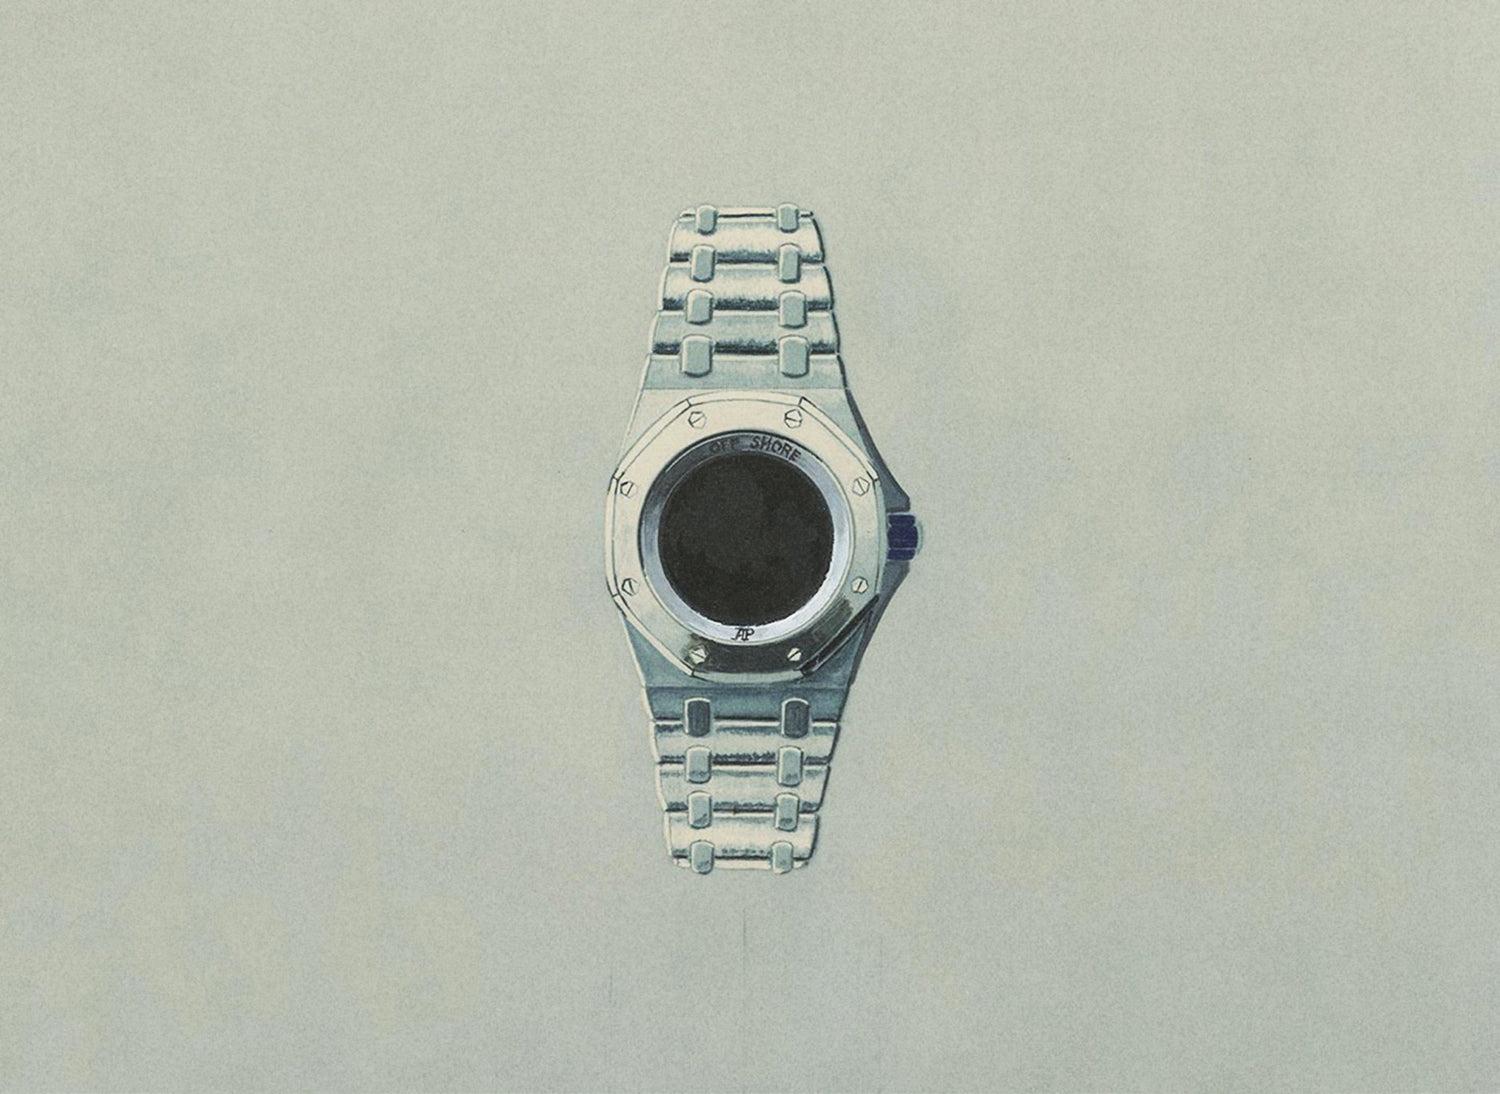 Design sketch of an Audemars Piguet Royal Oak Offshore case and bracelet for A Collected Man Lonodn